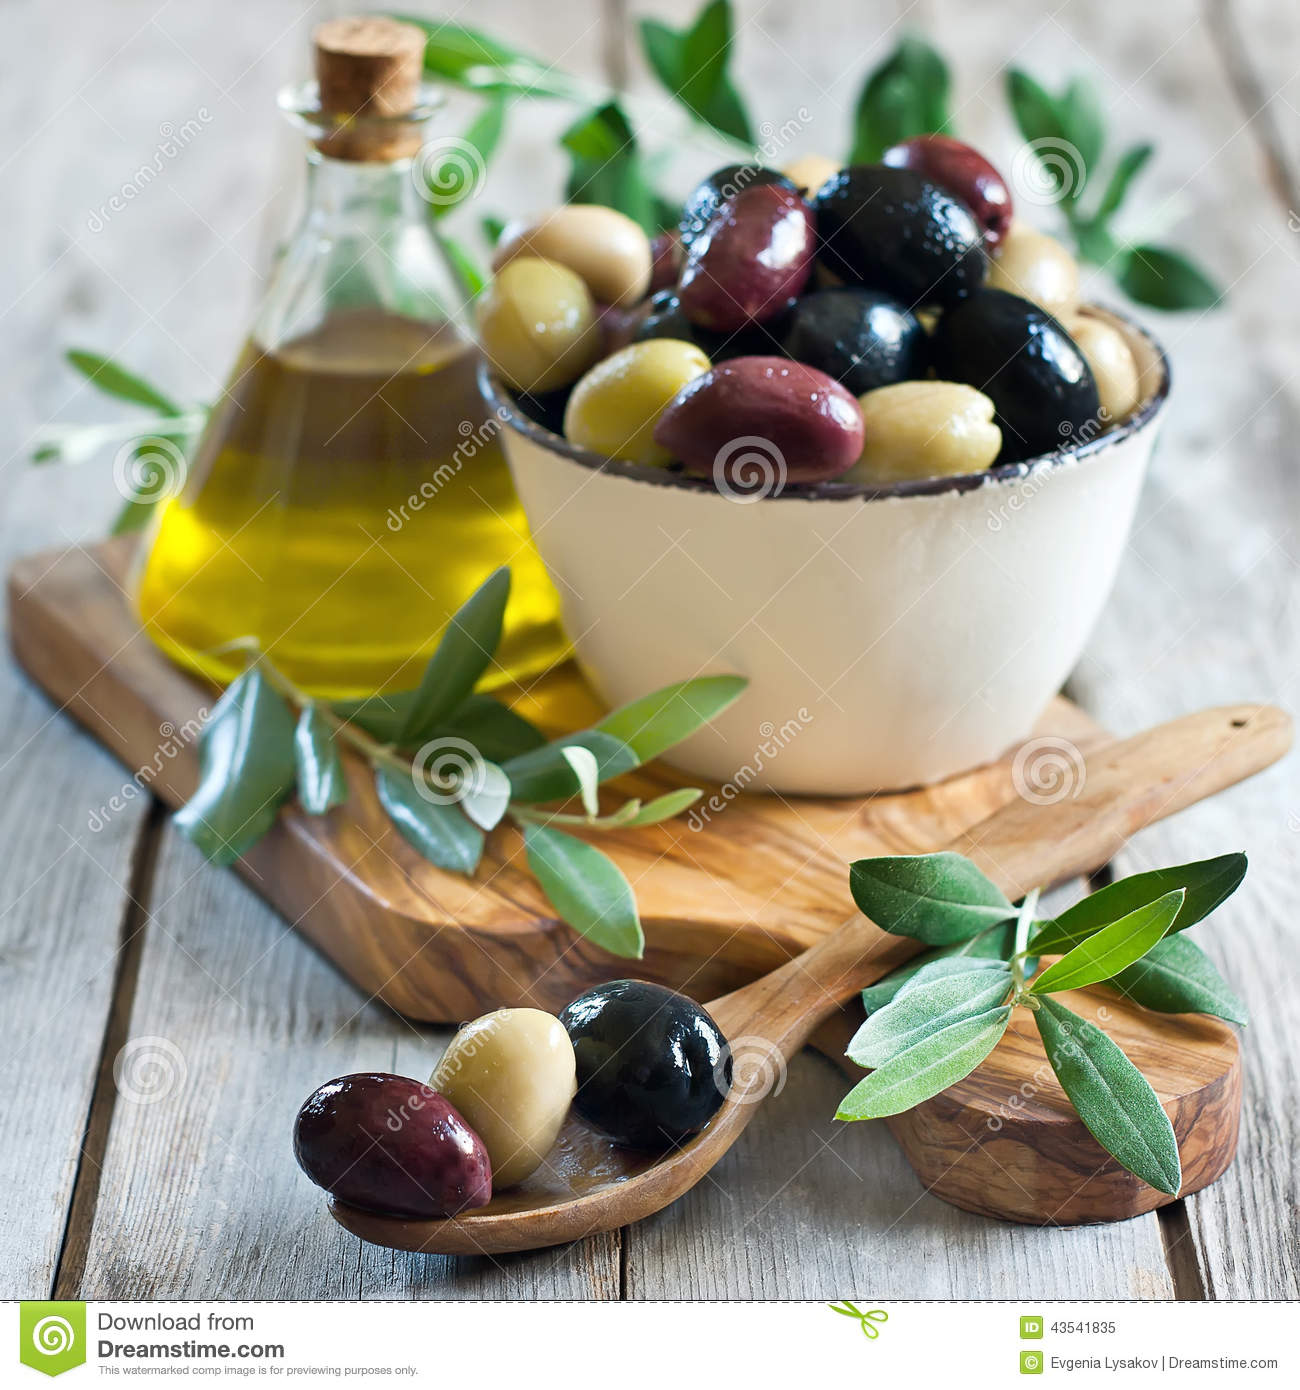 How To Prepare Mixed Olives